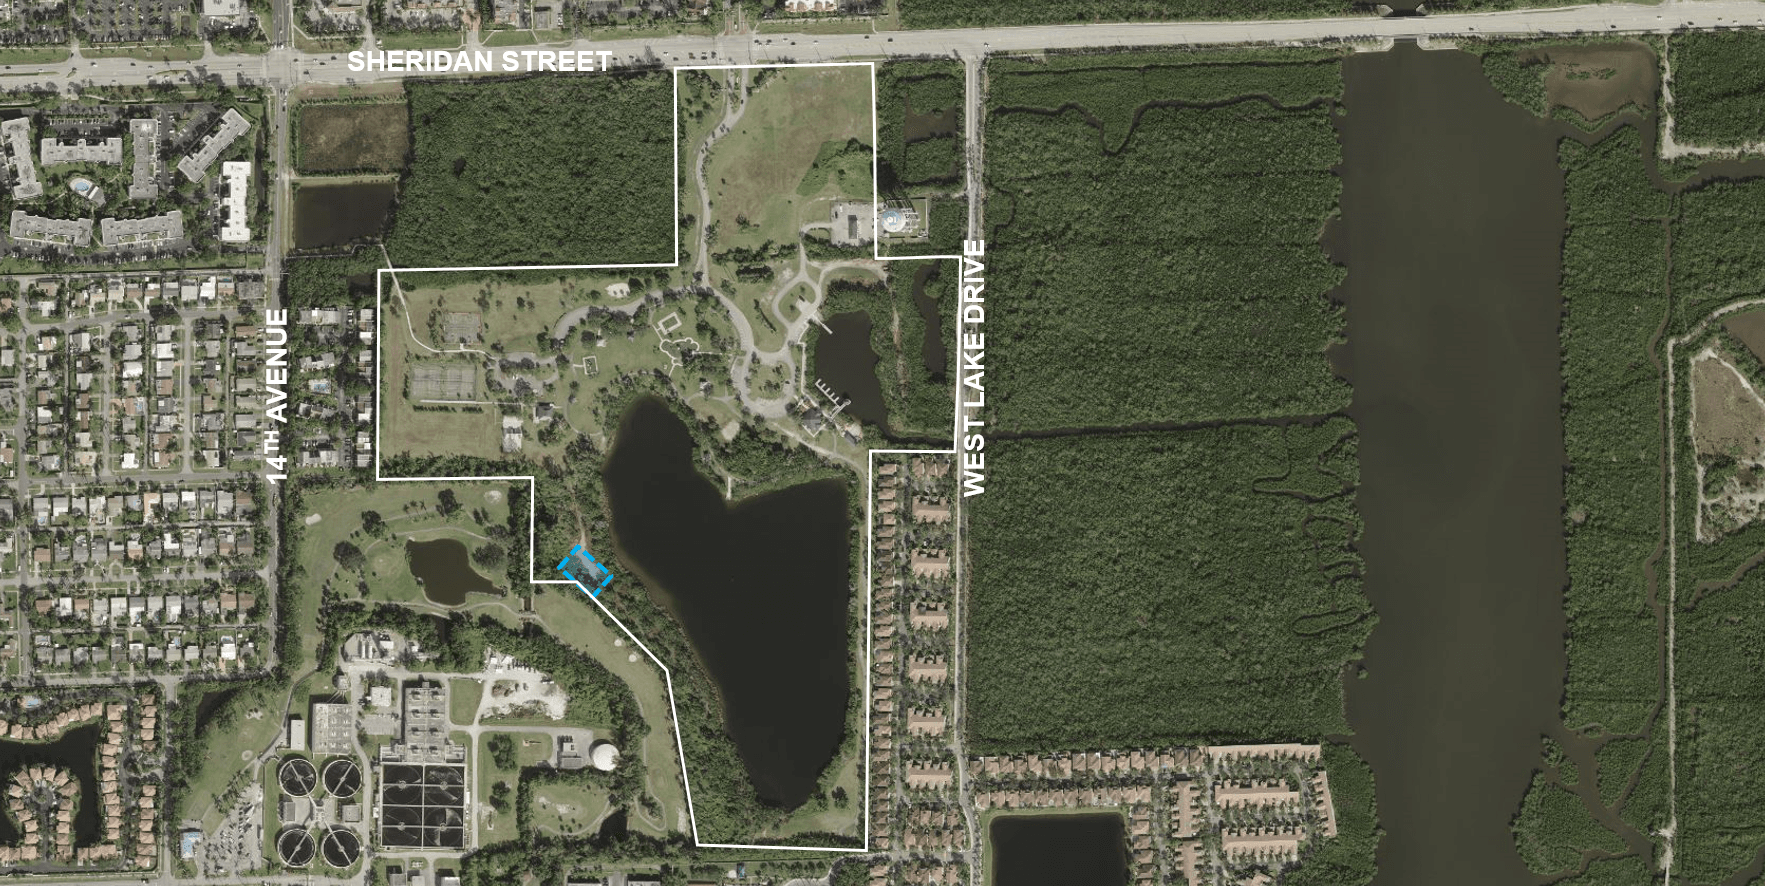 Ariel view of West Lake Park with proposed communication tower location highlighted in blue